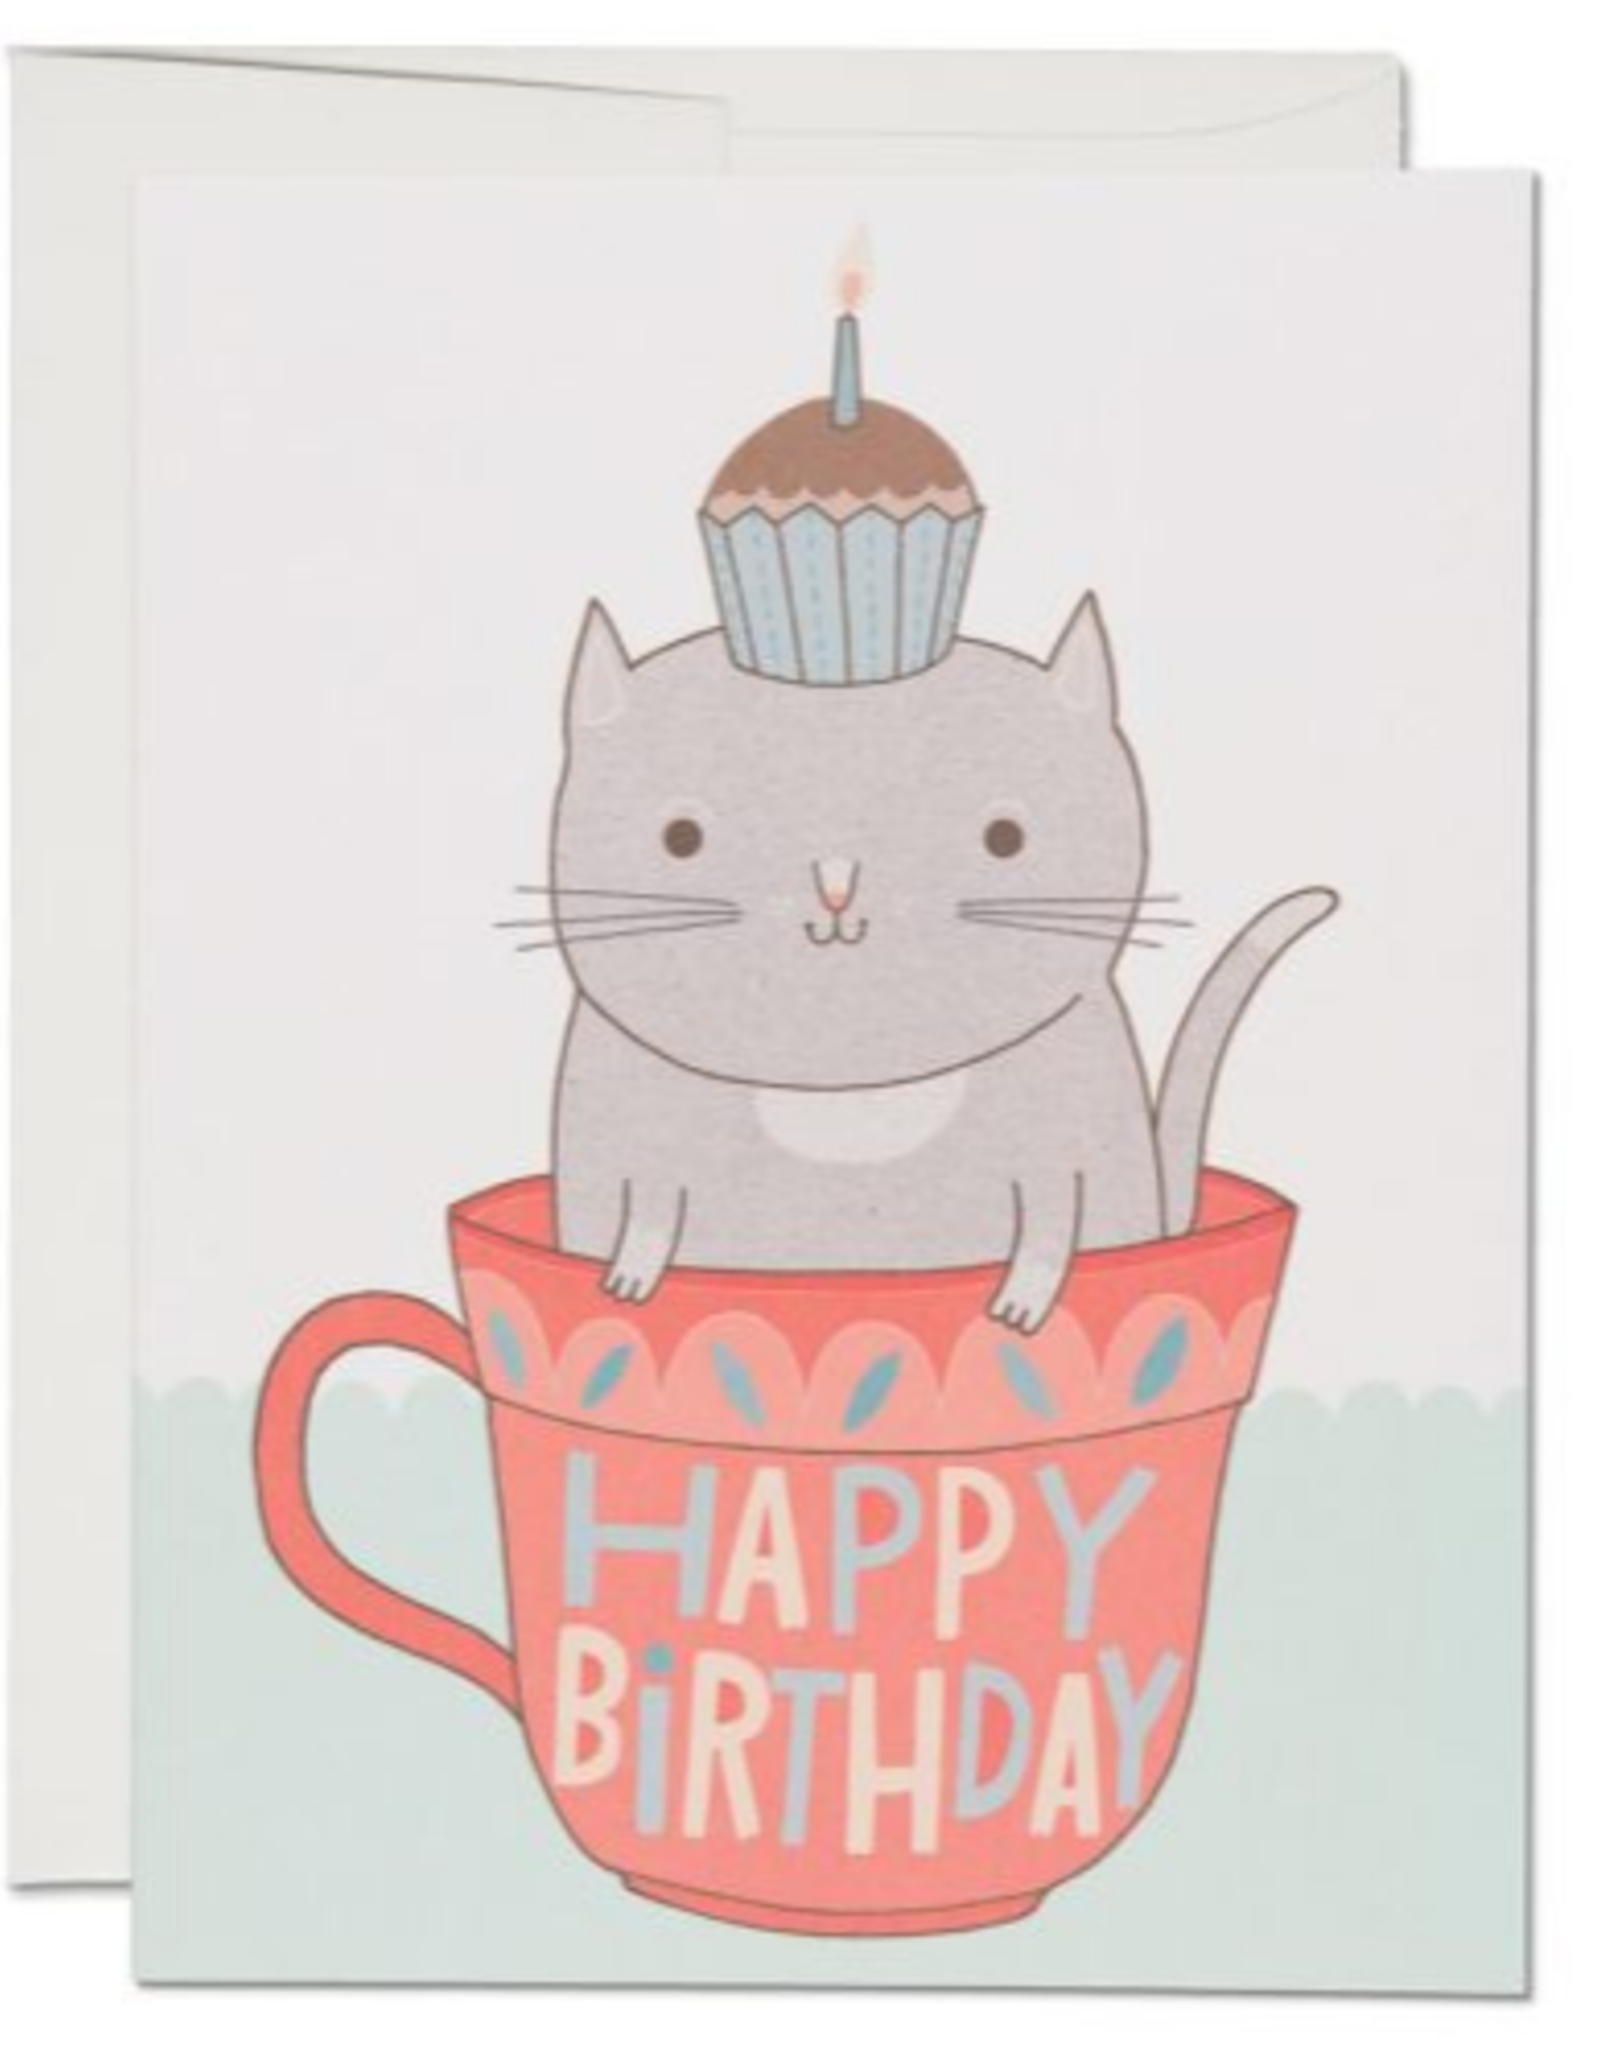 Happy Birthday Teacup Cat Greeting Card